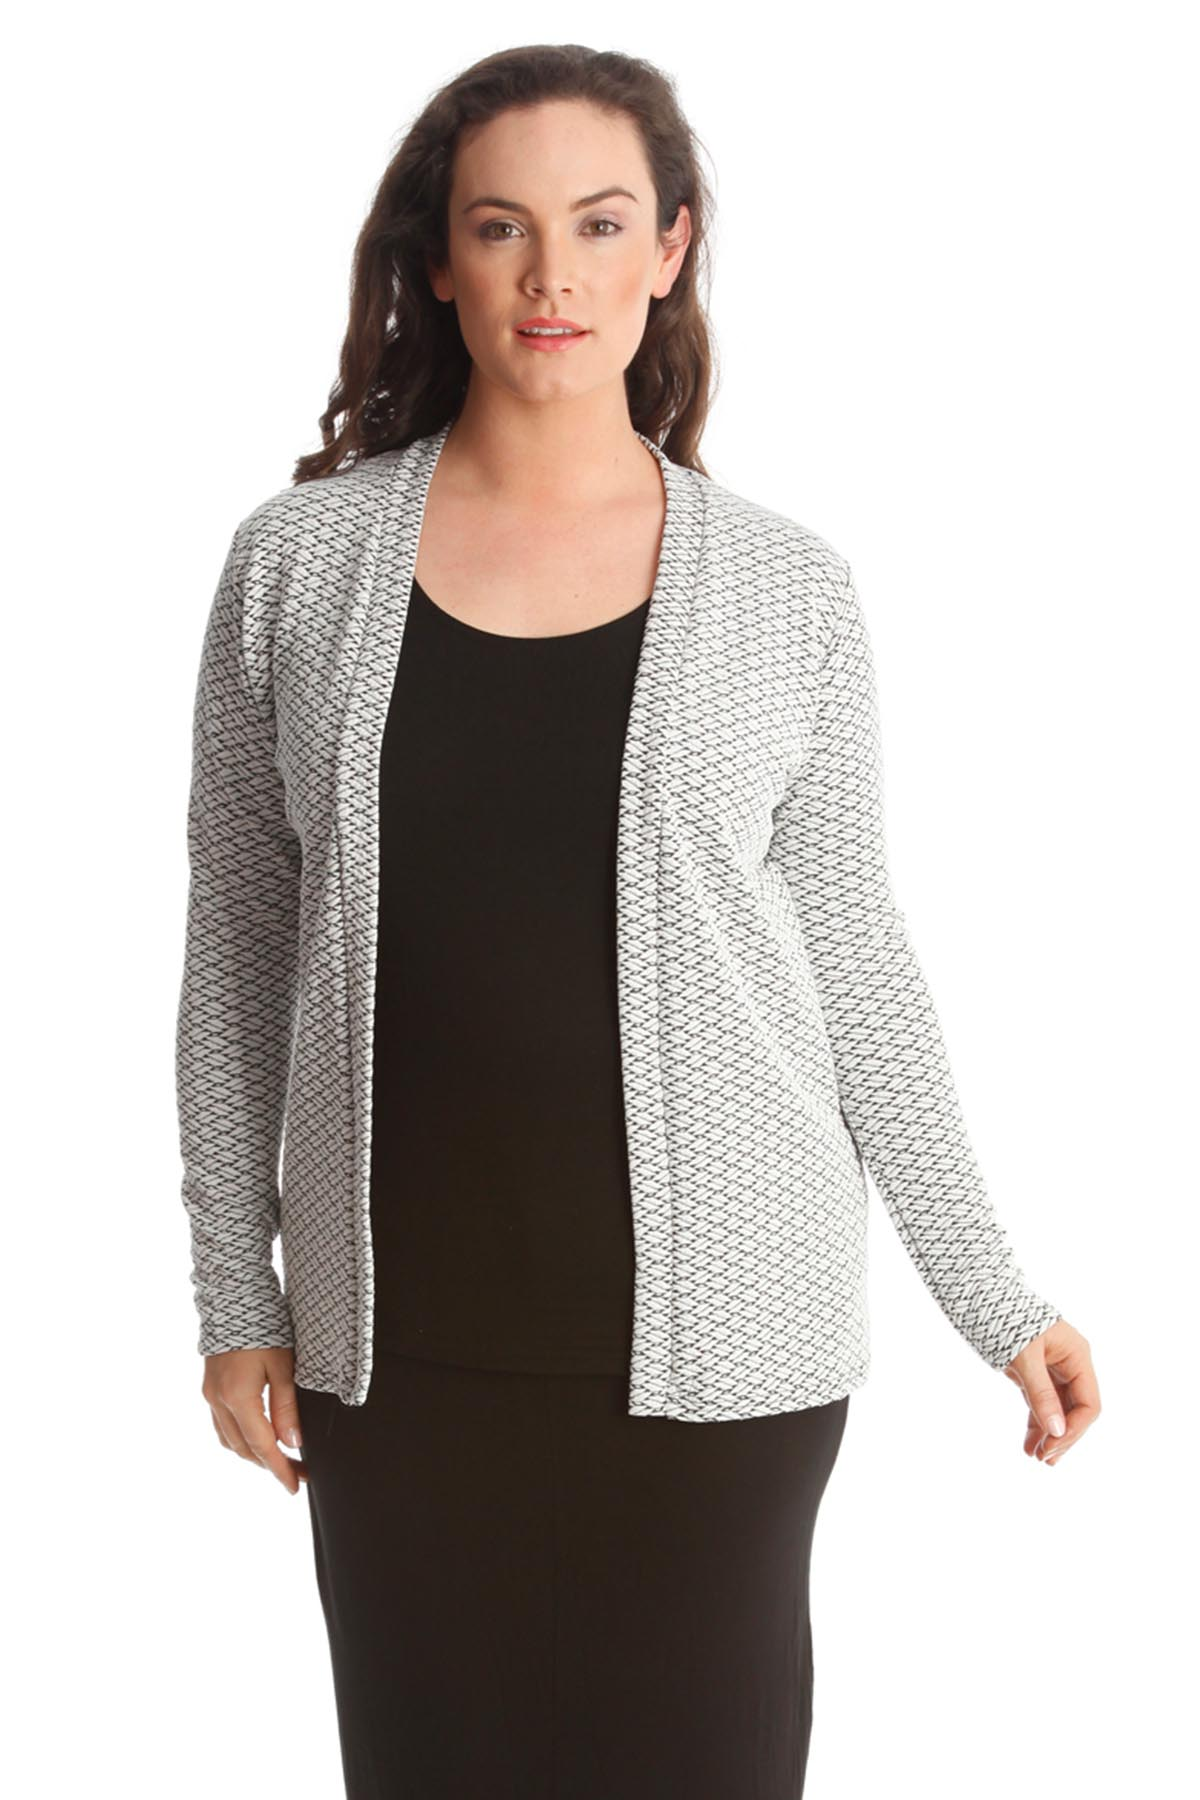 New Ladies Blazer Womens Plus Size Jacket Texture Fabric ...